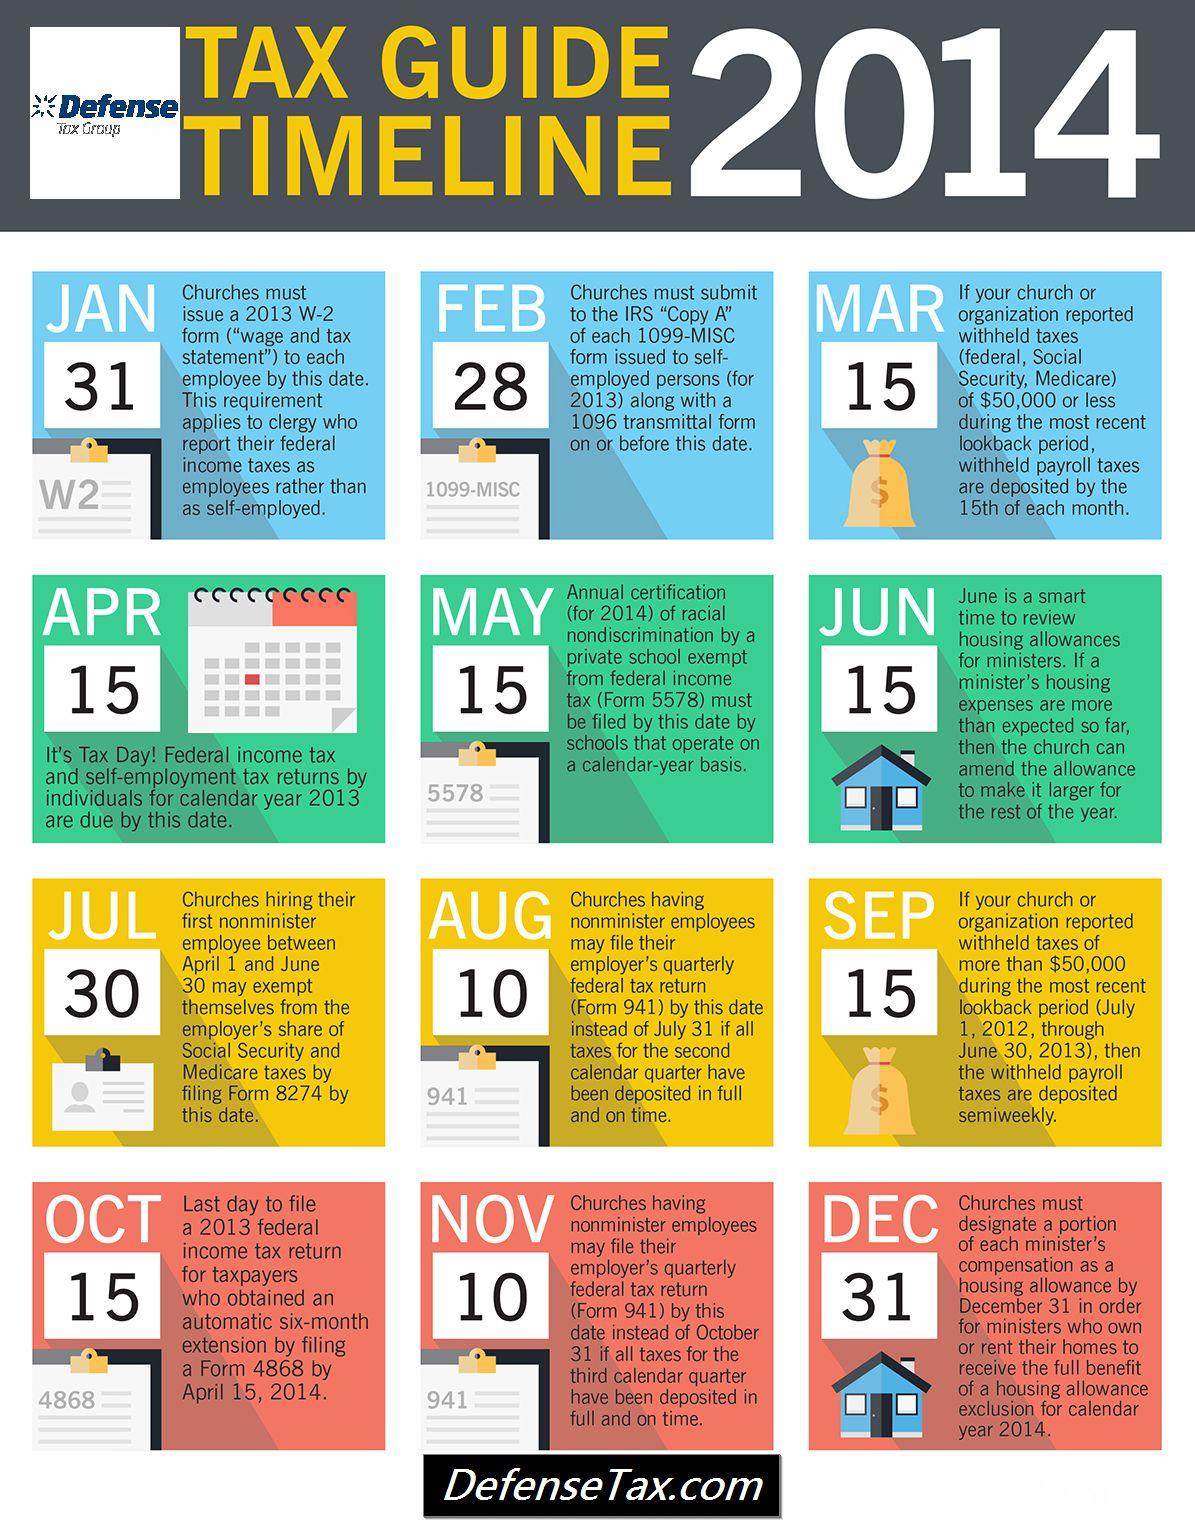 Tax guide timeline 2014 infographic critical dates deadlines and defensetax tax guide timeline 2014 infographic critical dates deadlines and falaconquin